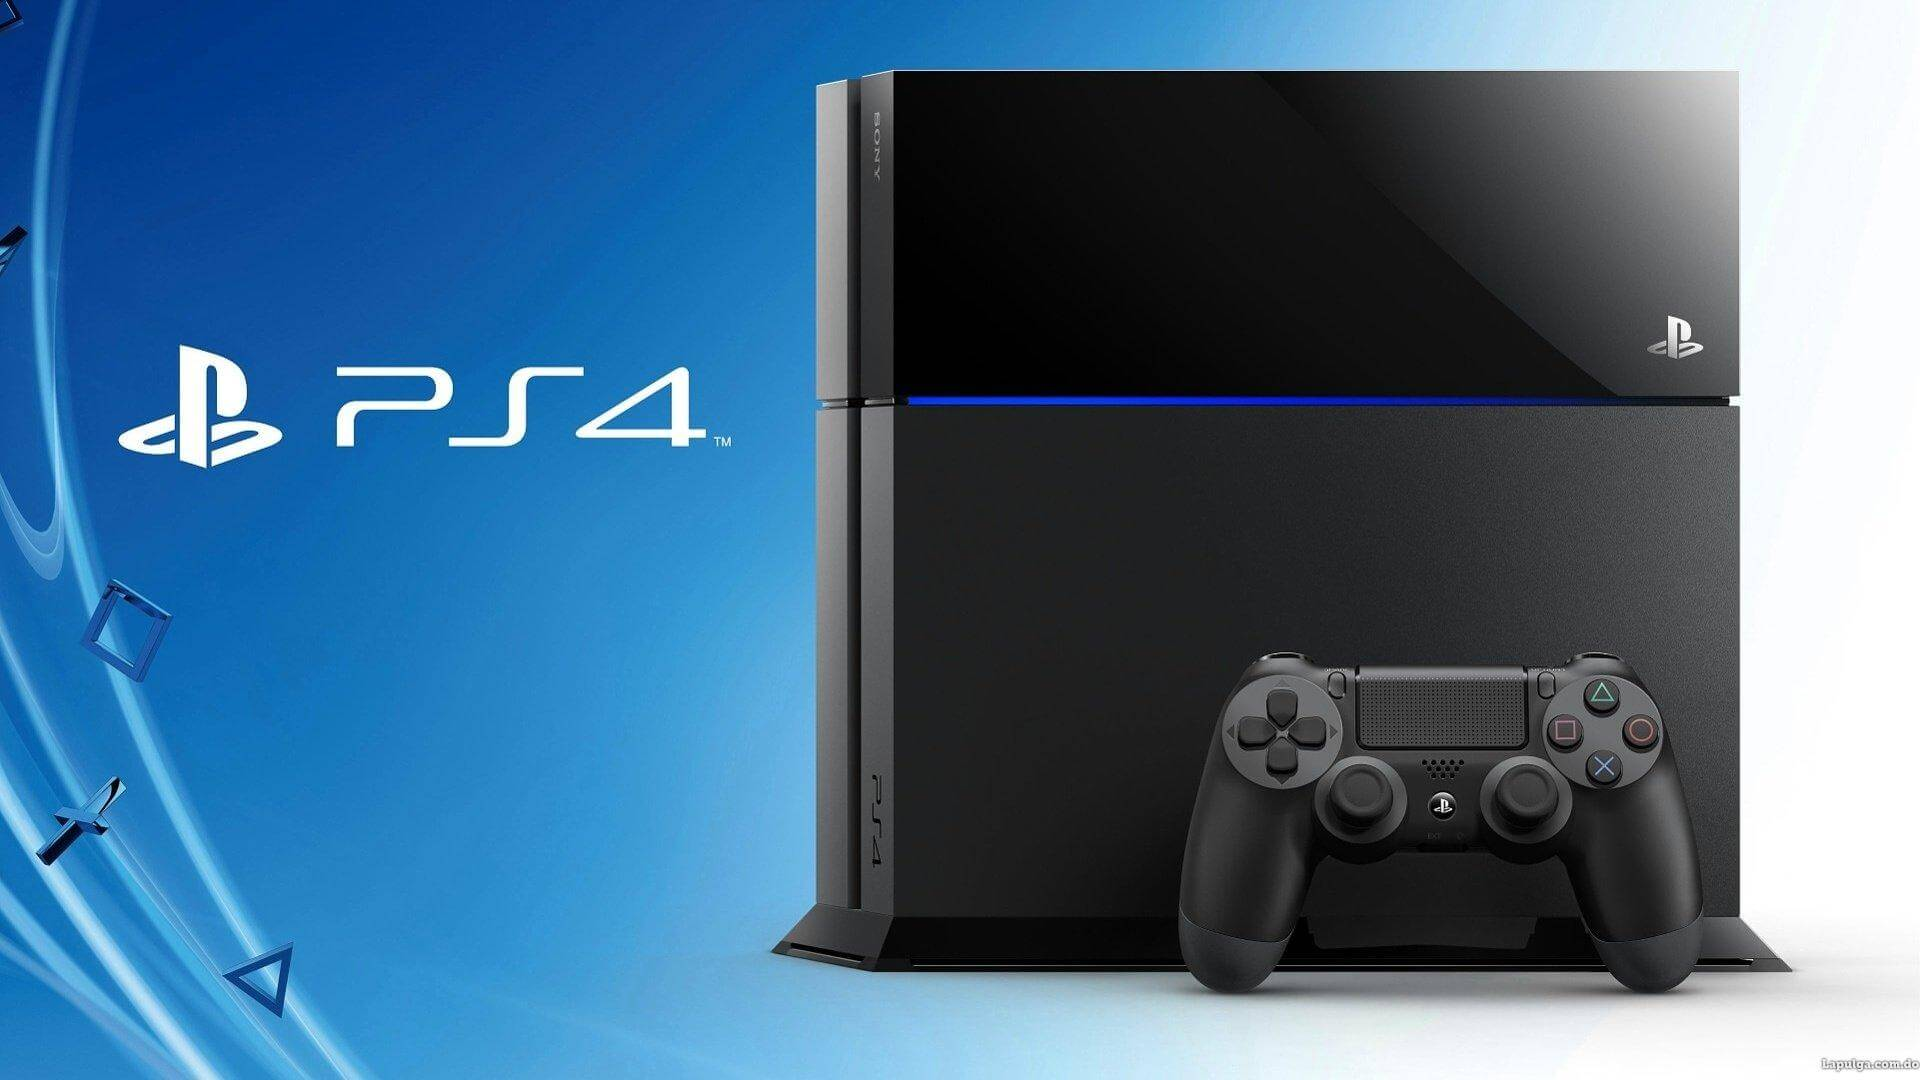 PS4 Neo Rumored to Release in September